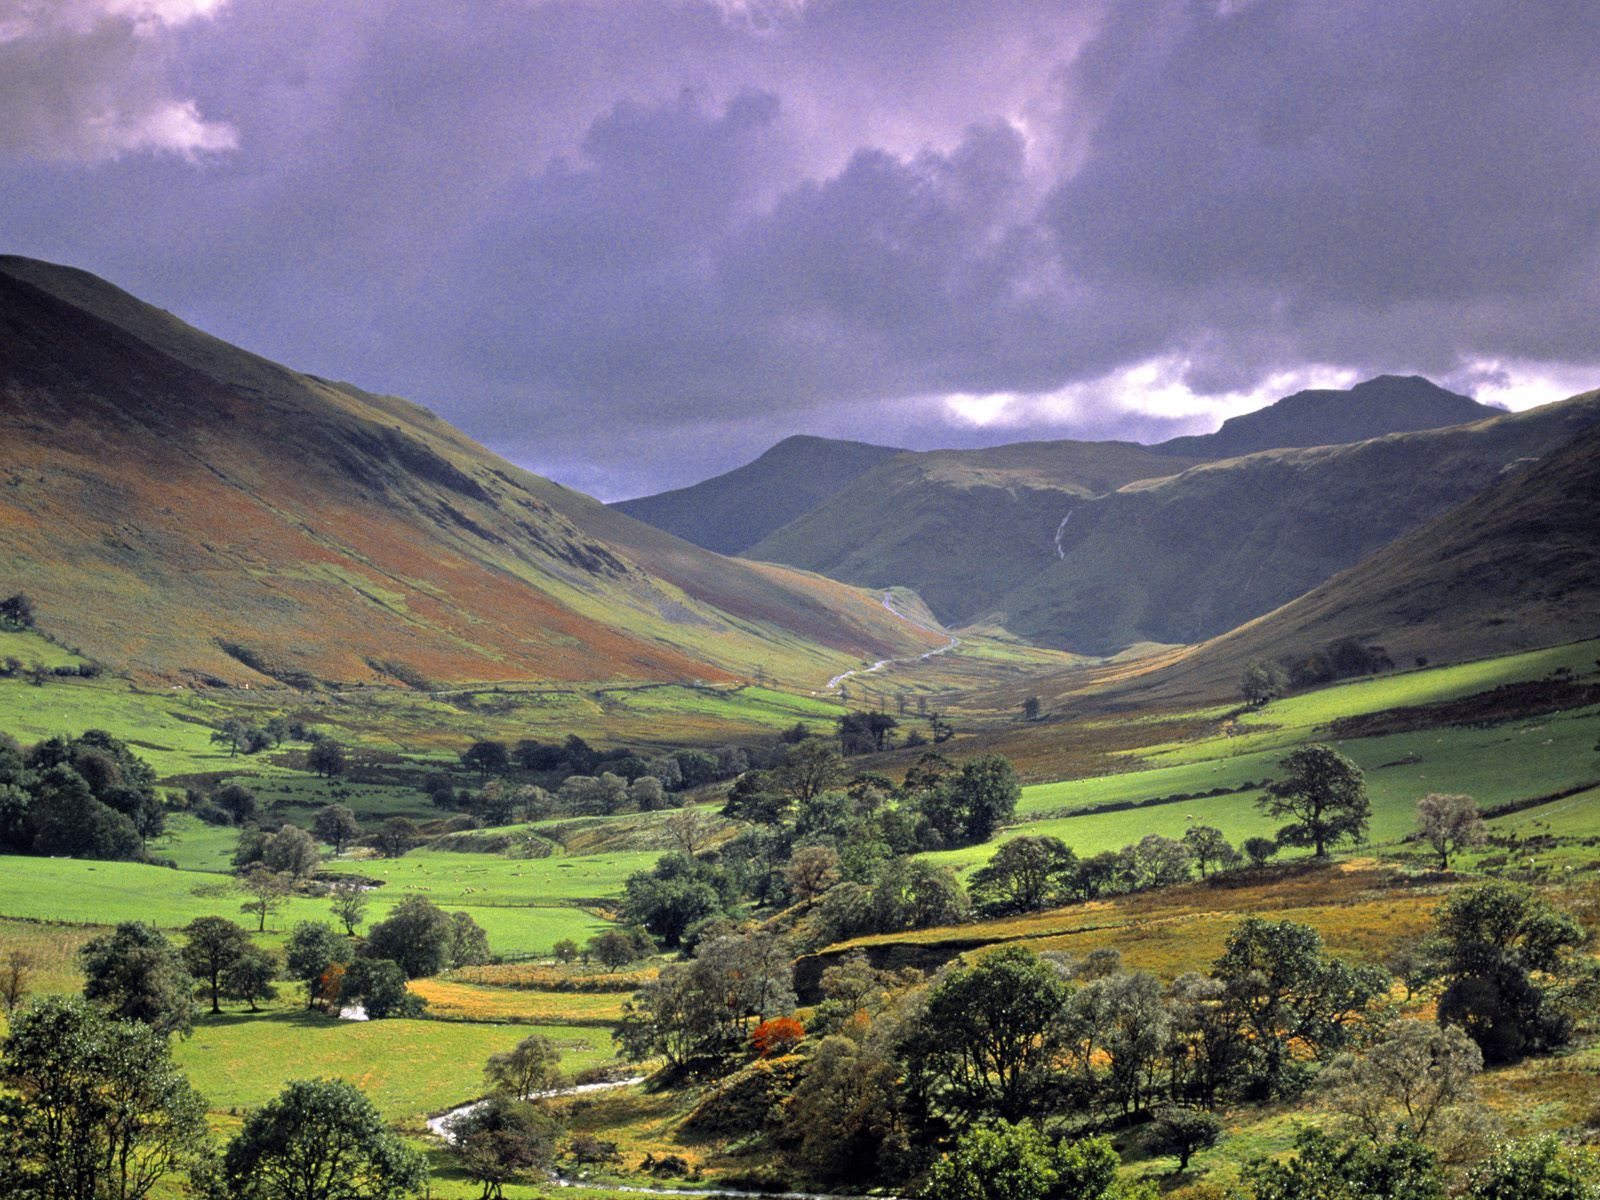 Lake District, Cumbria, England